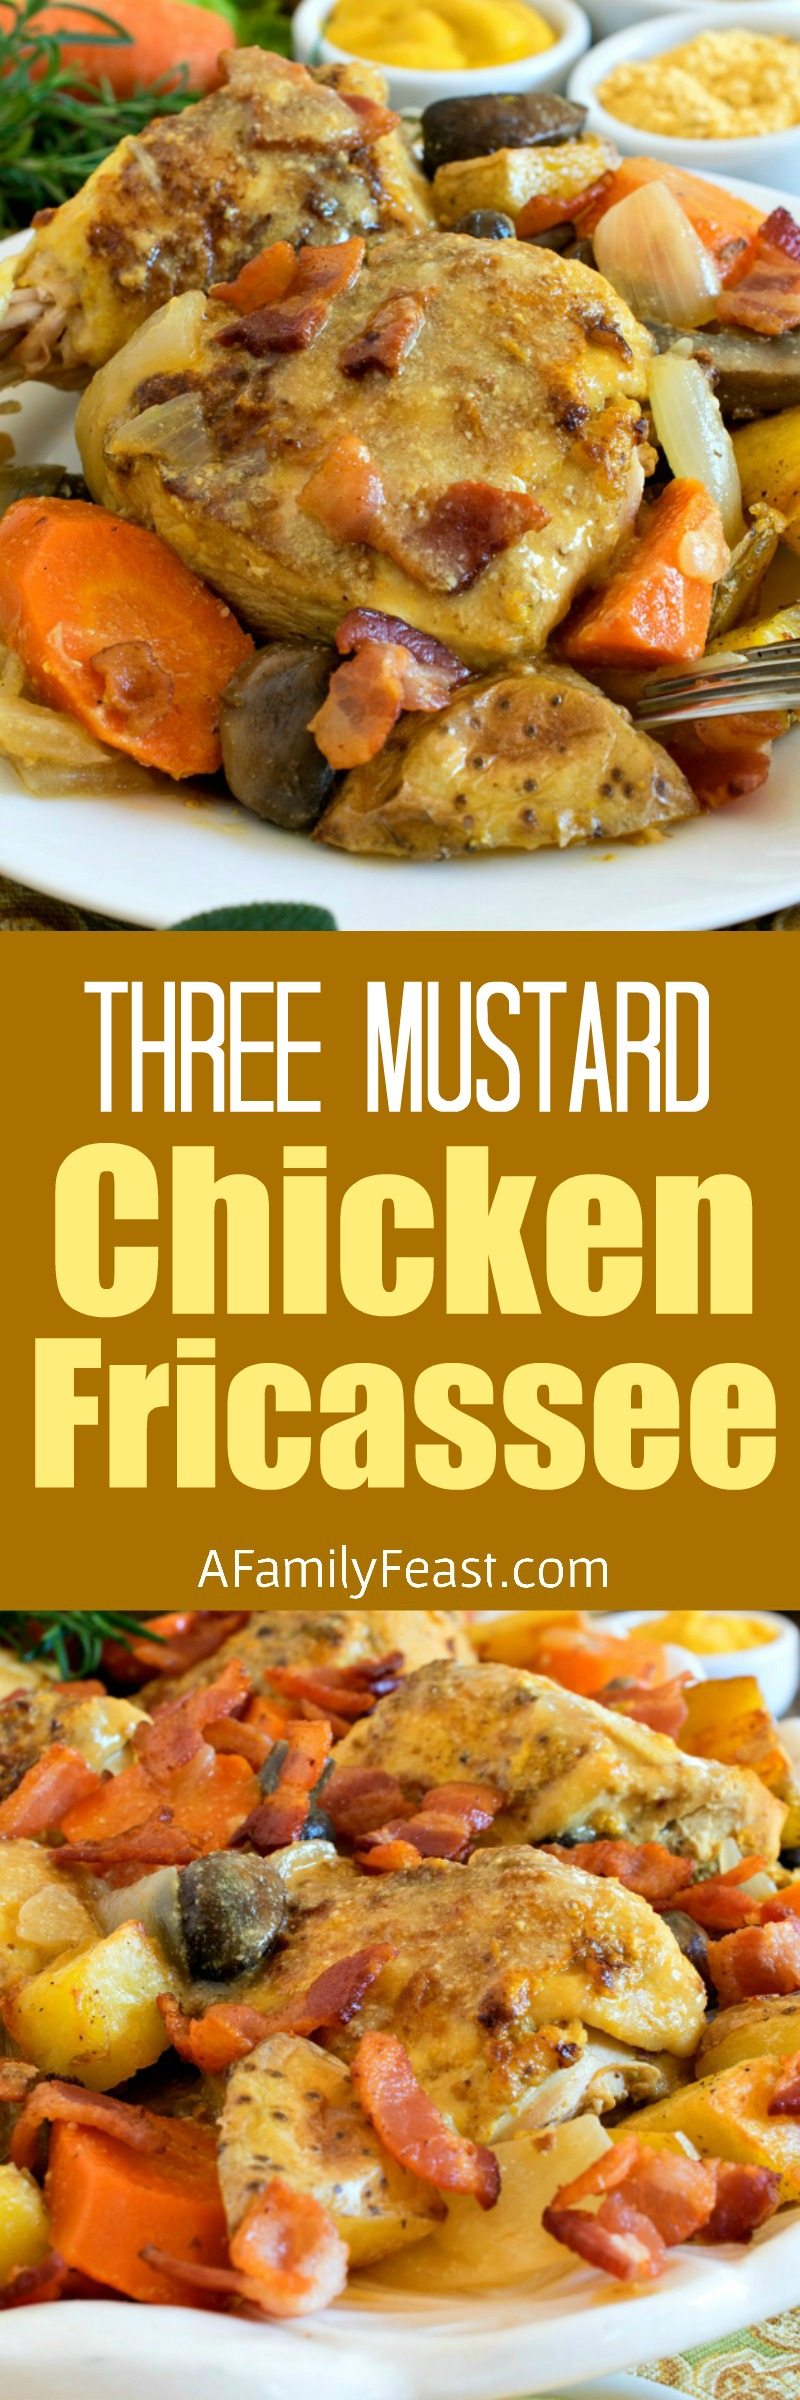 This flavorful Three Mustard Chicken Fricassee will make your taste buds dance and sing! Tender pieces of meat and vegetables in a luxurious, creamy sauce with a kick of mustard flavor.